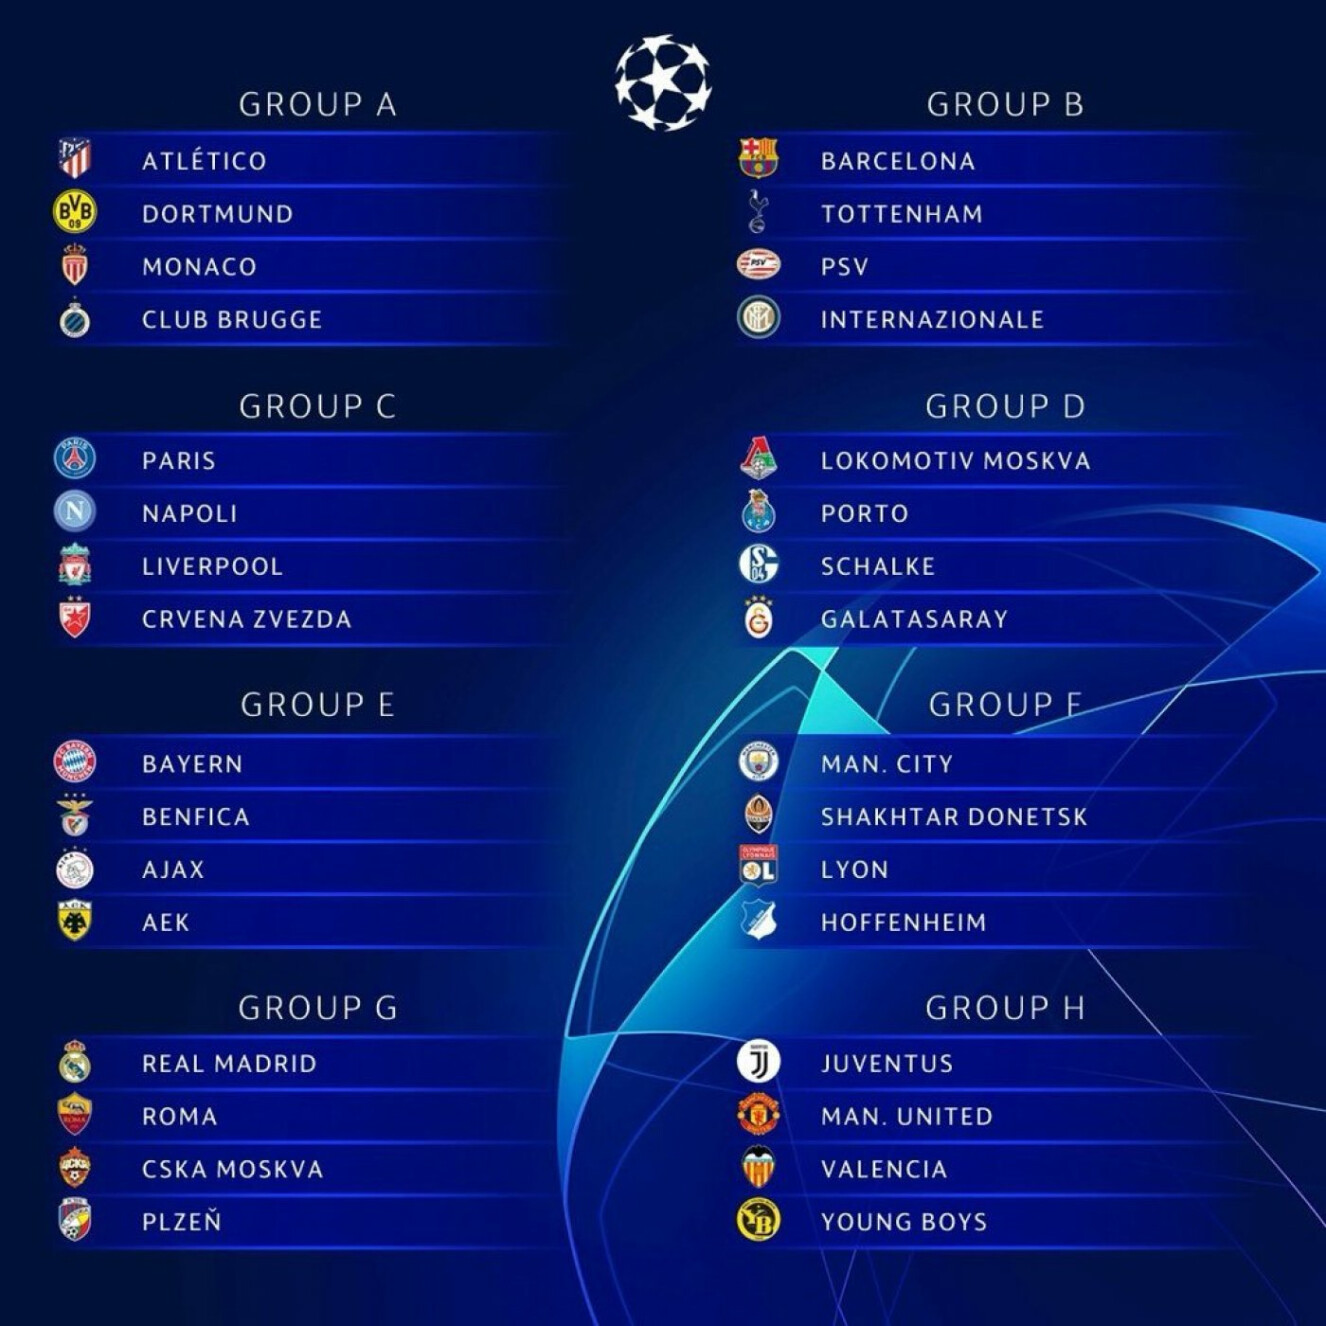 Winners and losers of the UEFA Champions League draw